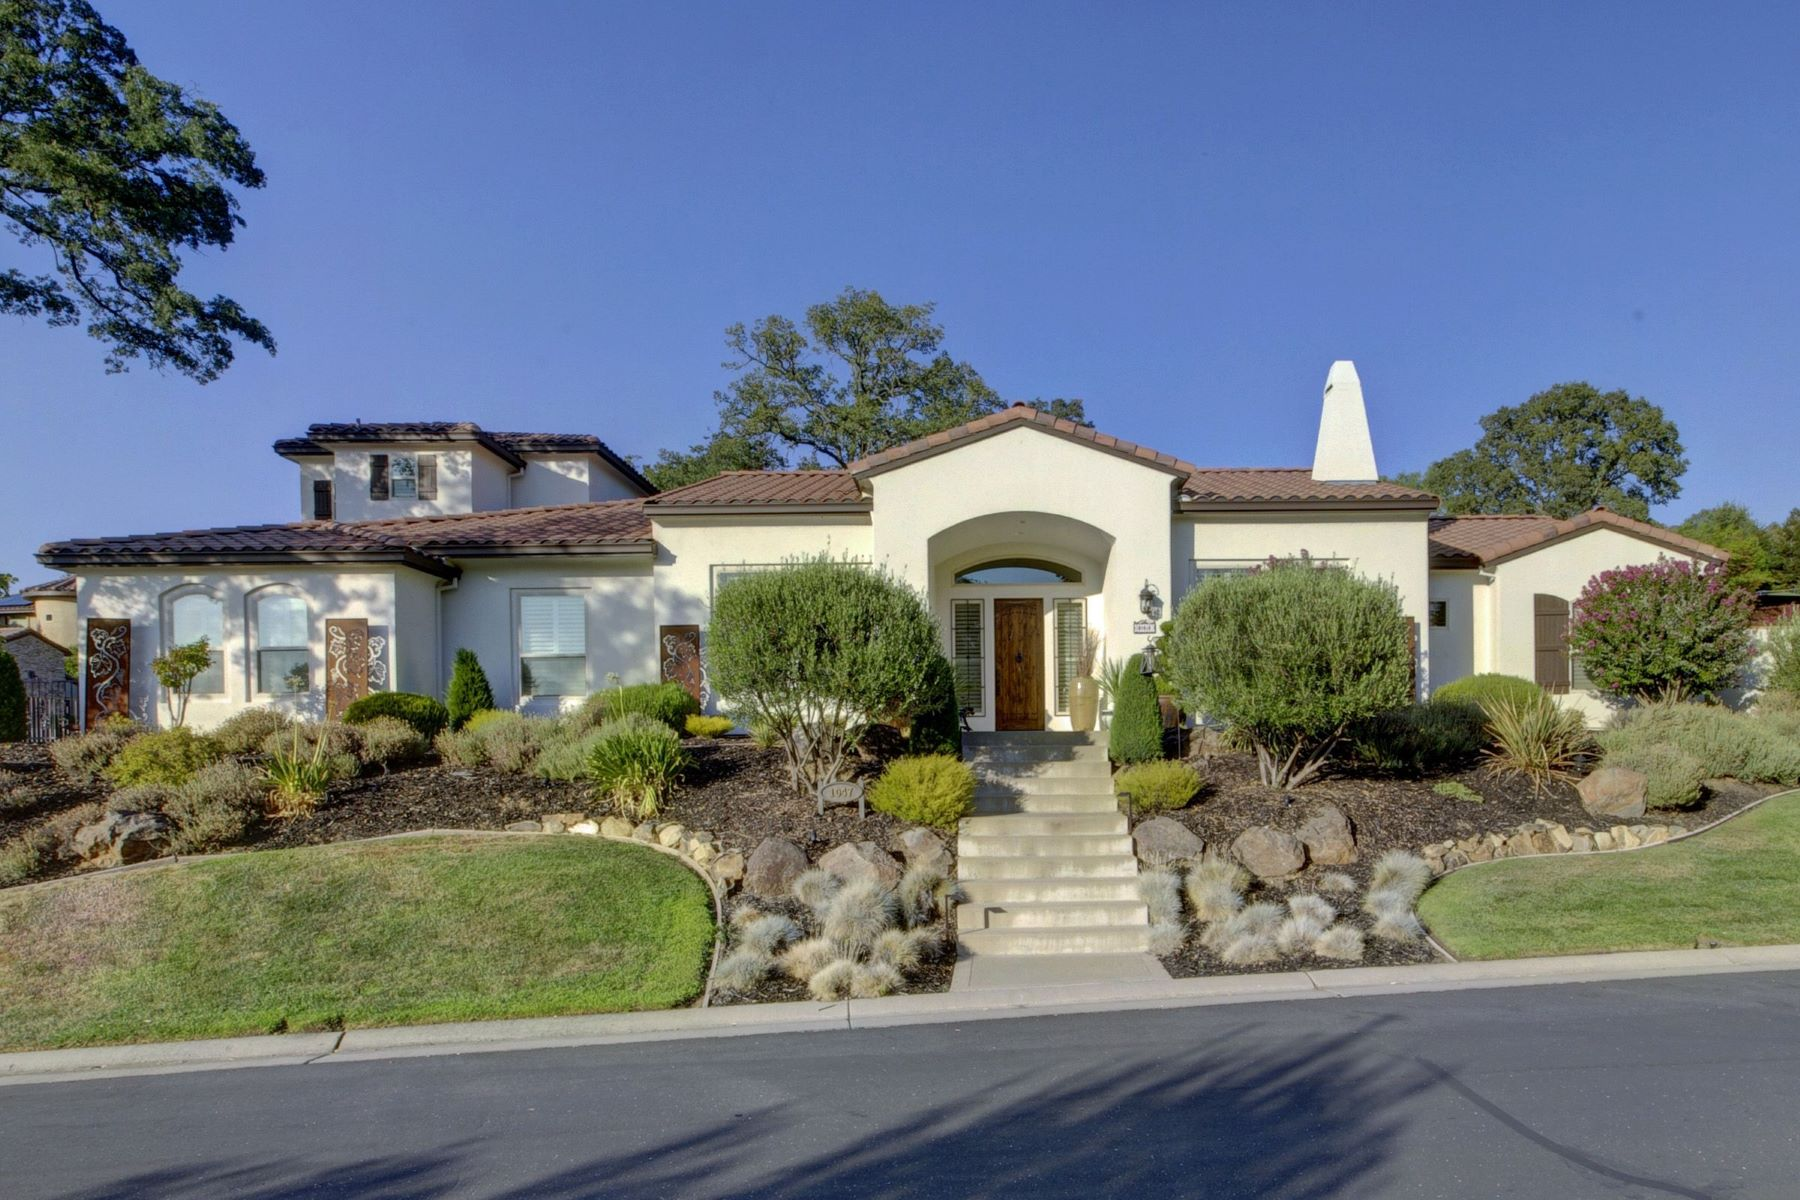 Other Residential Homes for Sale at 1047 Cambria, El Dorado Hills, CA, 95762 1047 Cambria El Dorado Hills, California 95762 United States